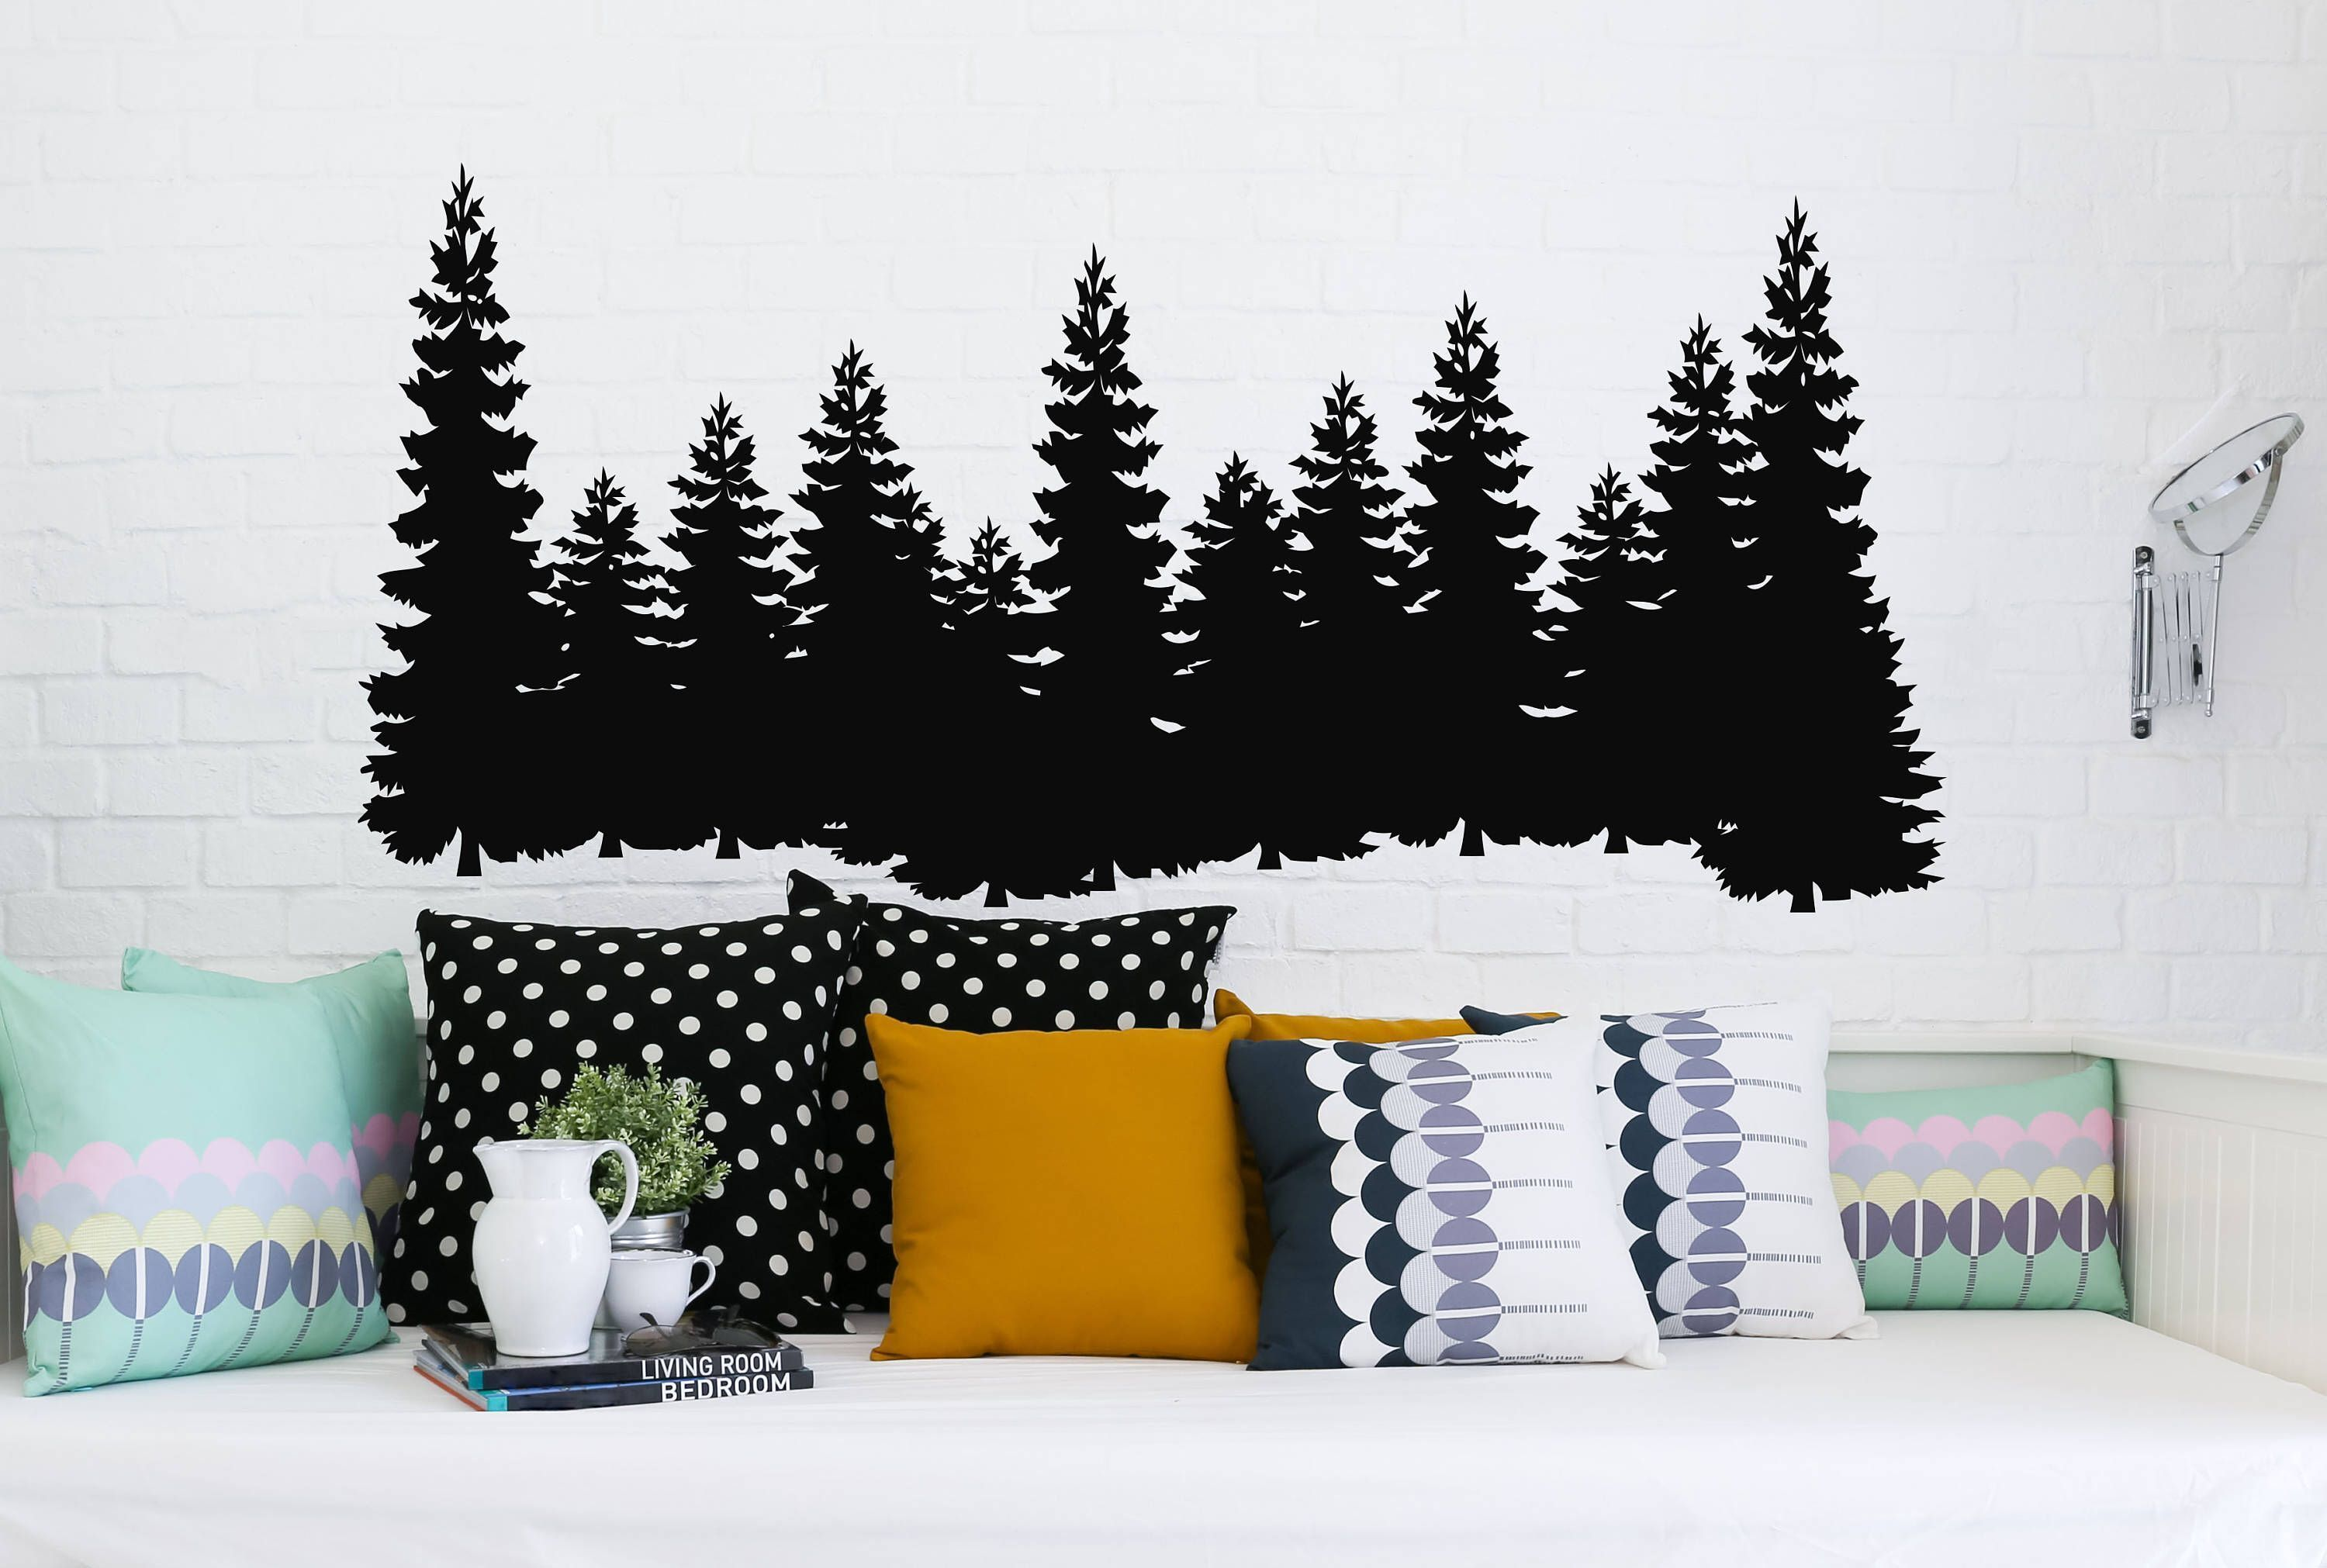 Pine Trees Wall Decal Forest Landscape Nature Vinyl Sticker Merry